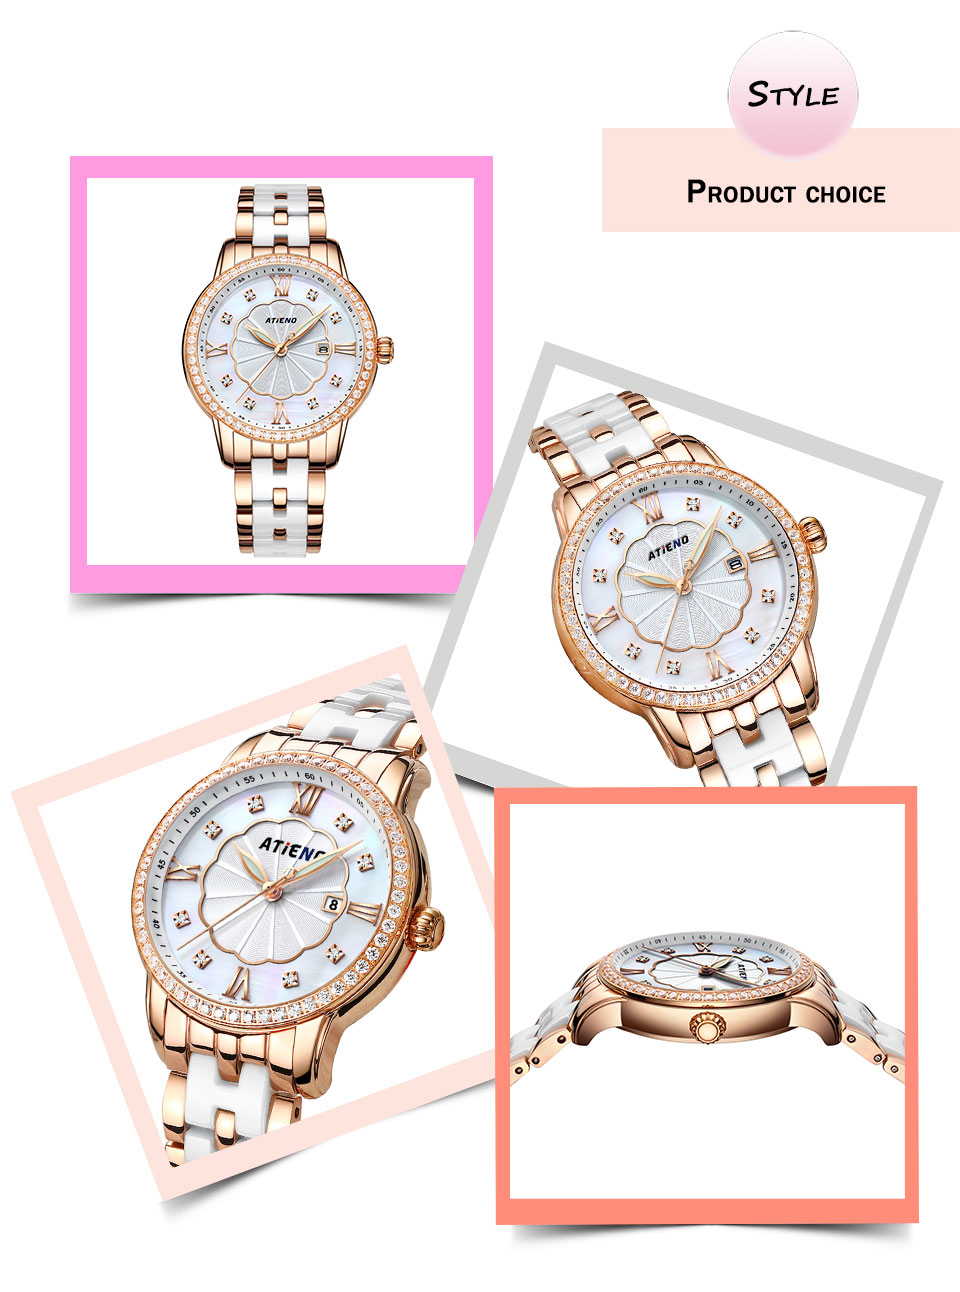 Wome Watches Atieno Holiday Gift Luxury Ceramic Wristband Fashion Ladies WristWatch Female Clock Quartz Relojes Para Mujer